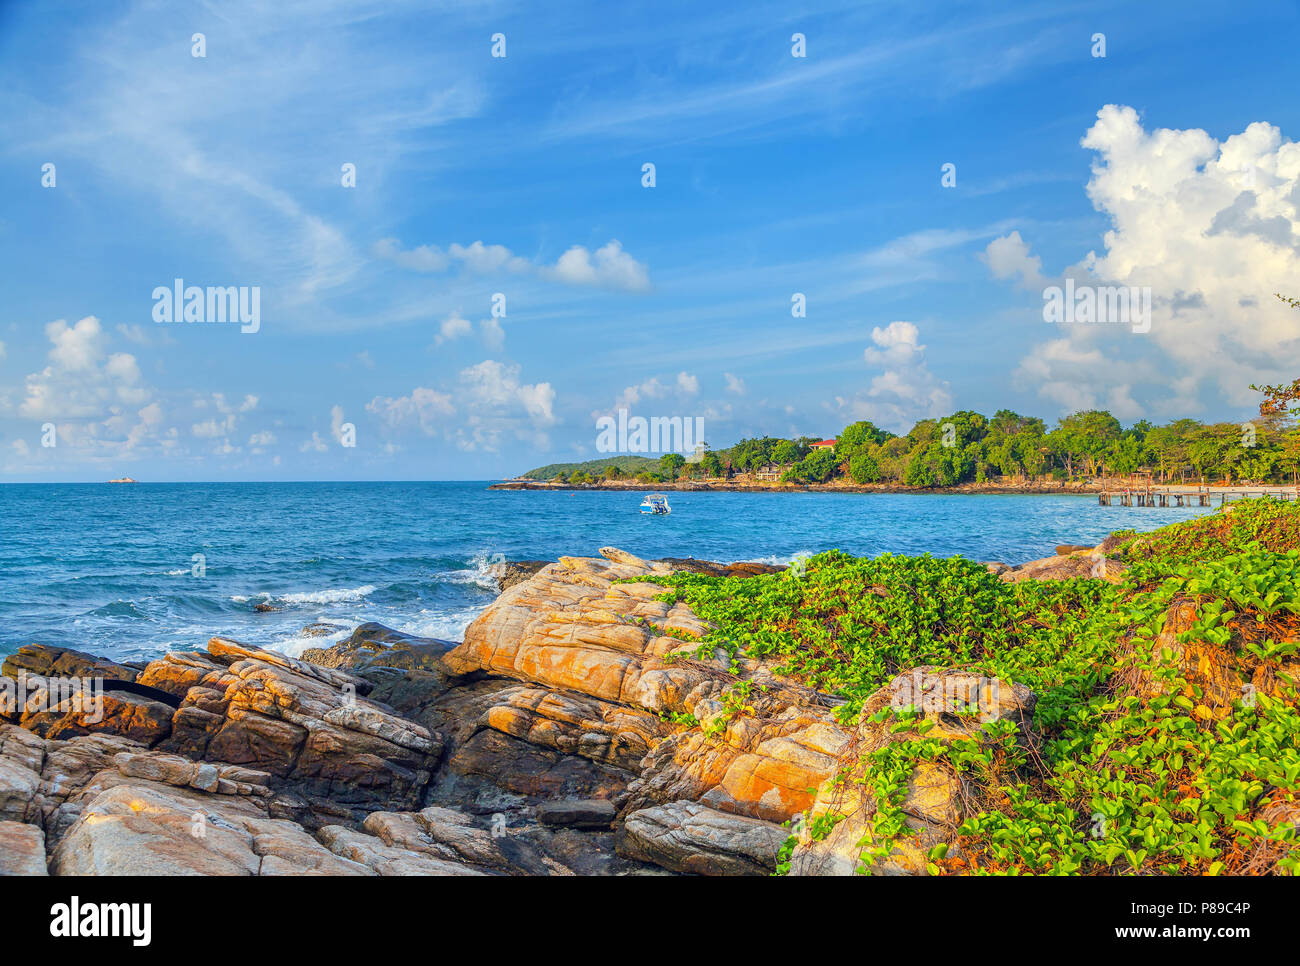 Sunrise over the island of Koh Samet in Thailand. - Stock Image